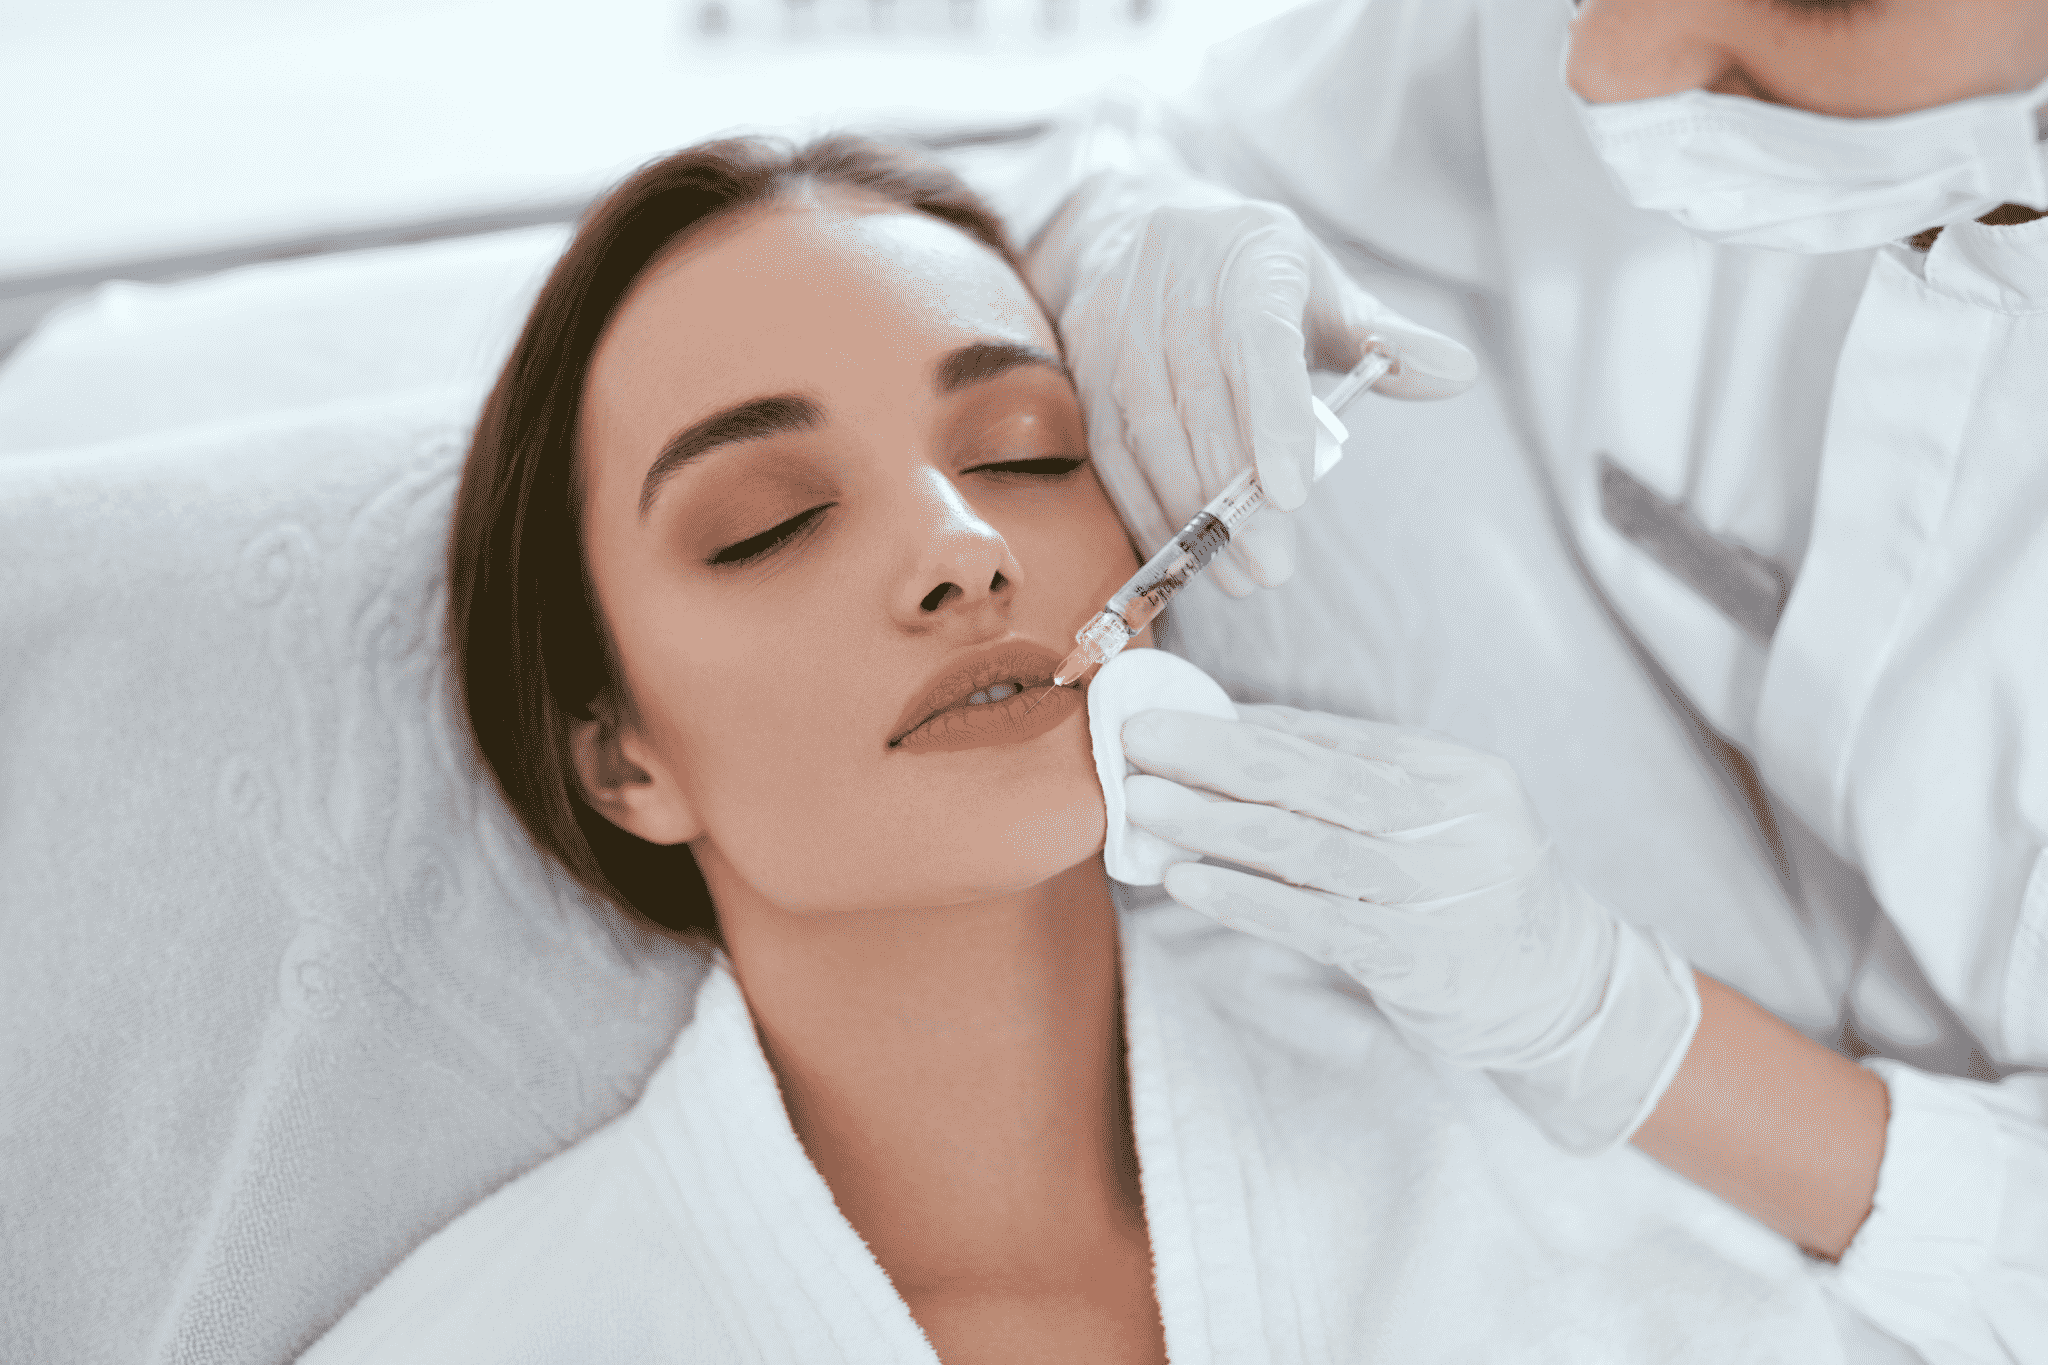 Beginners Guide 12 Things to Know Before Getting Botox or Fillers woman getting botox in her lips arcarapsychiatry.com Arcara Psychiatry